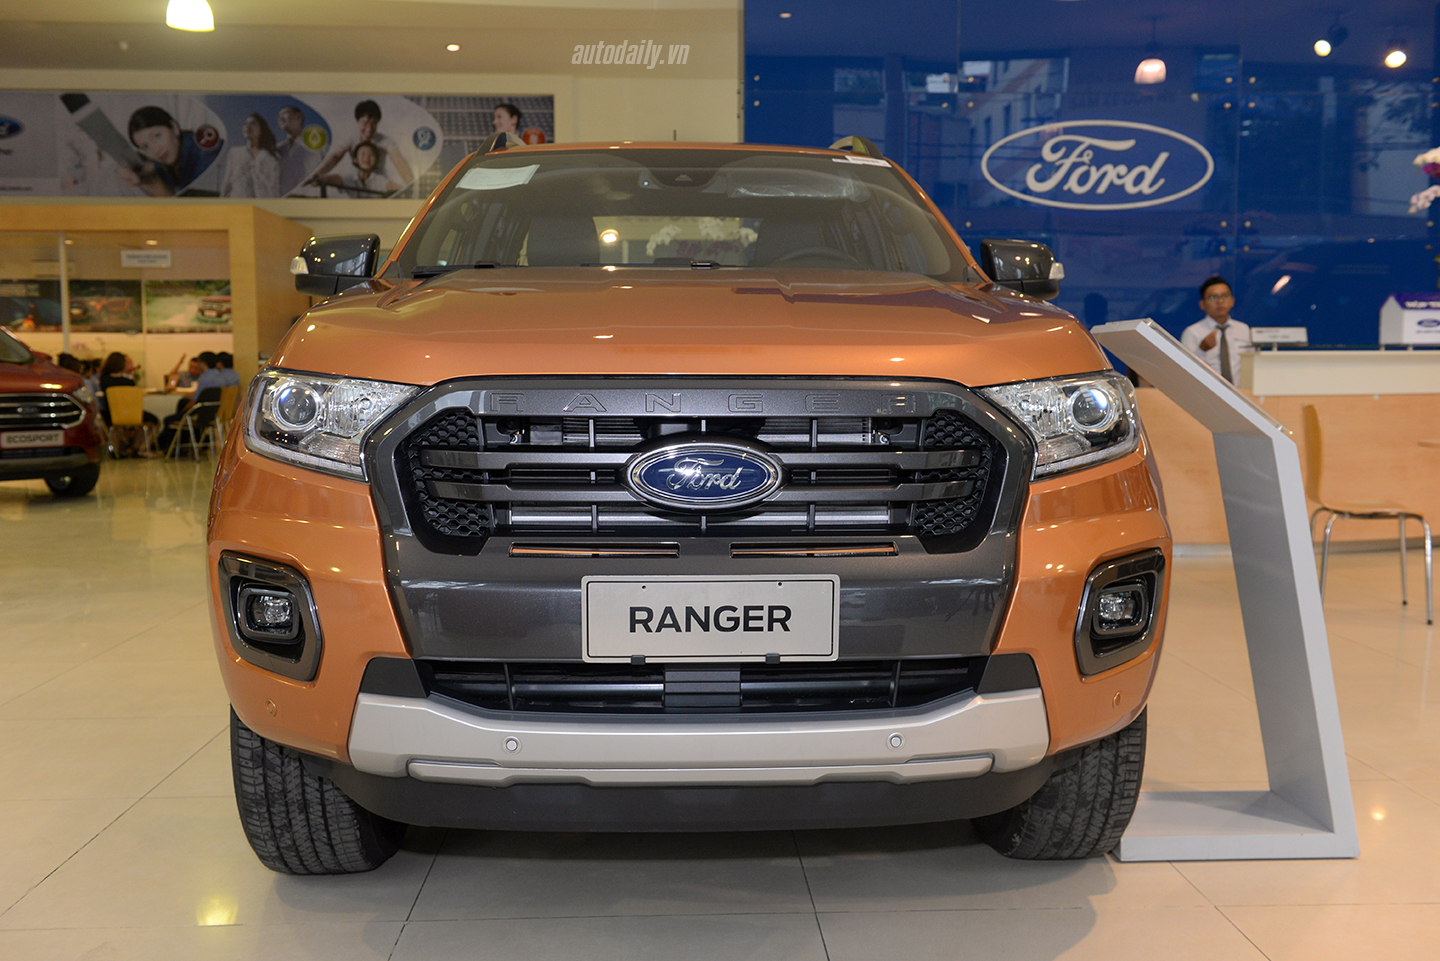 ford-rangerdsc-8832-copy.jpg